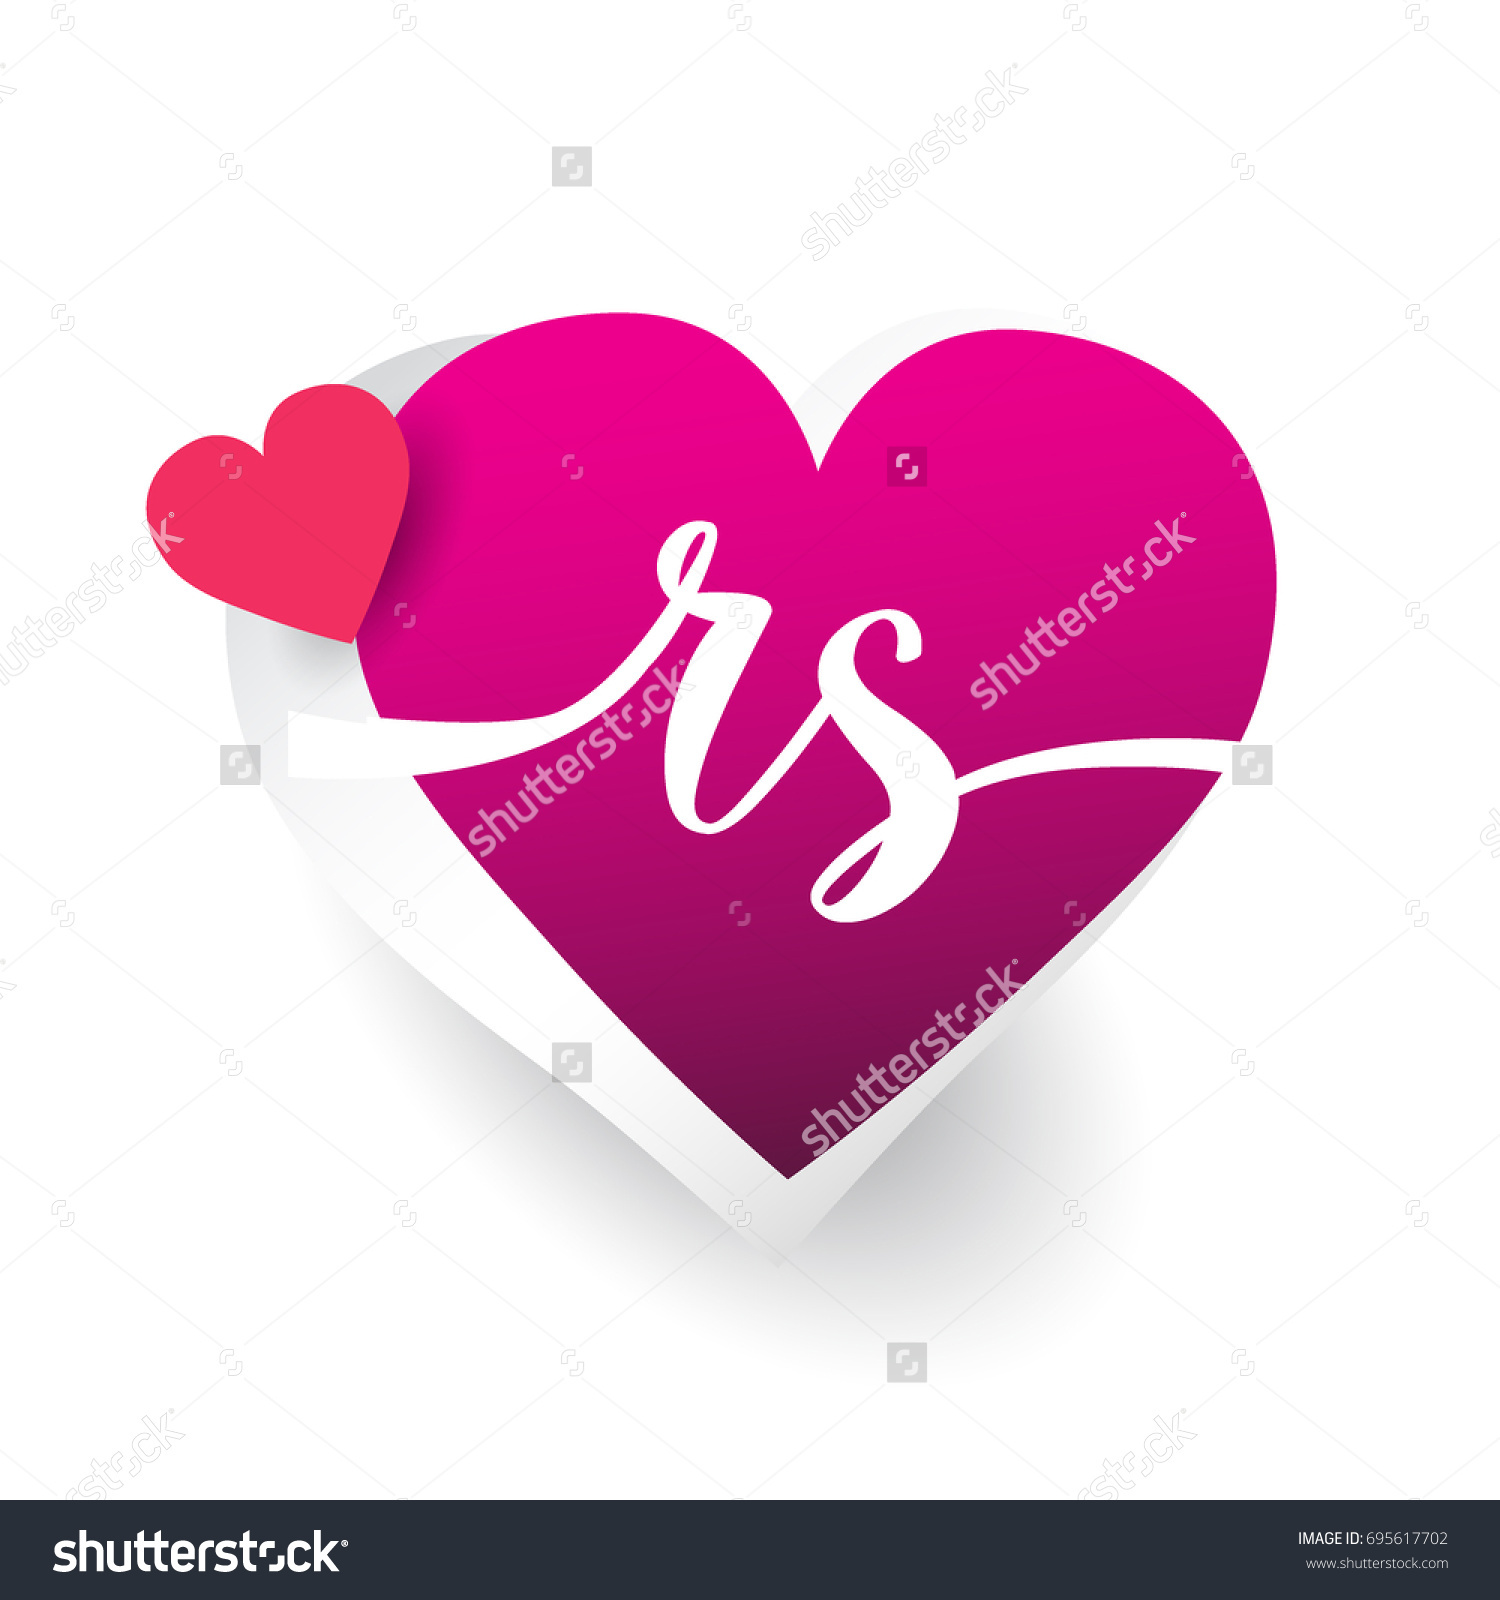 rs love photos  Initial Logo Letter RS Heart Shape Stock Vector 695617702 - Shutterstock